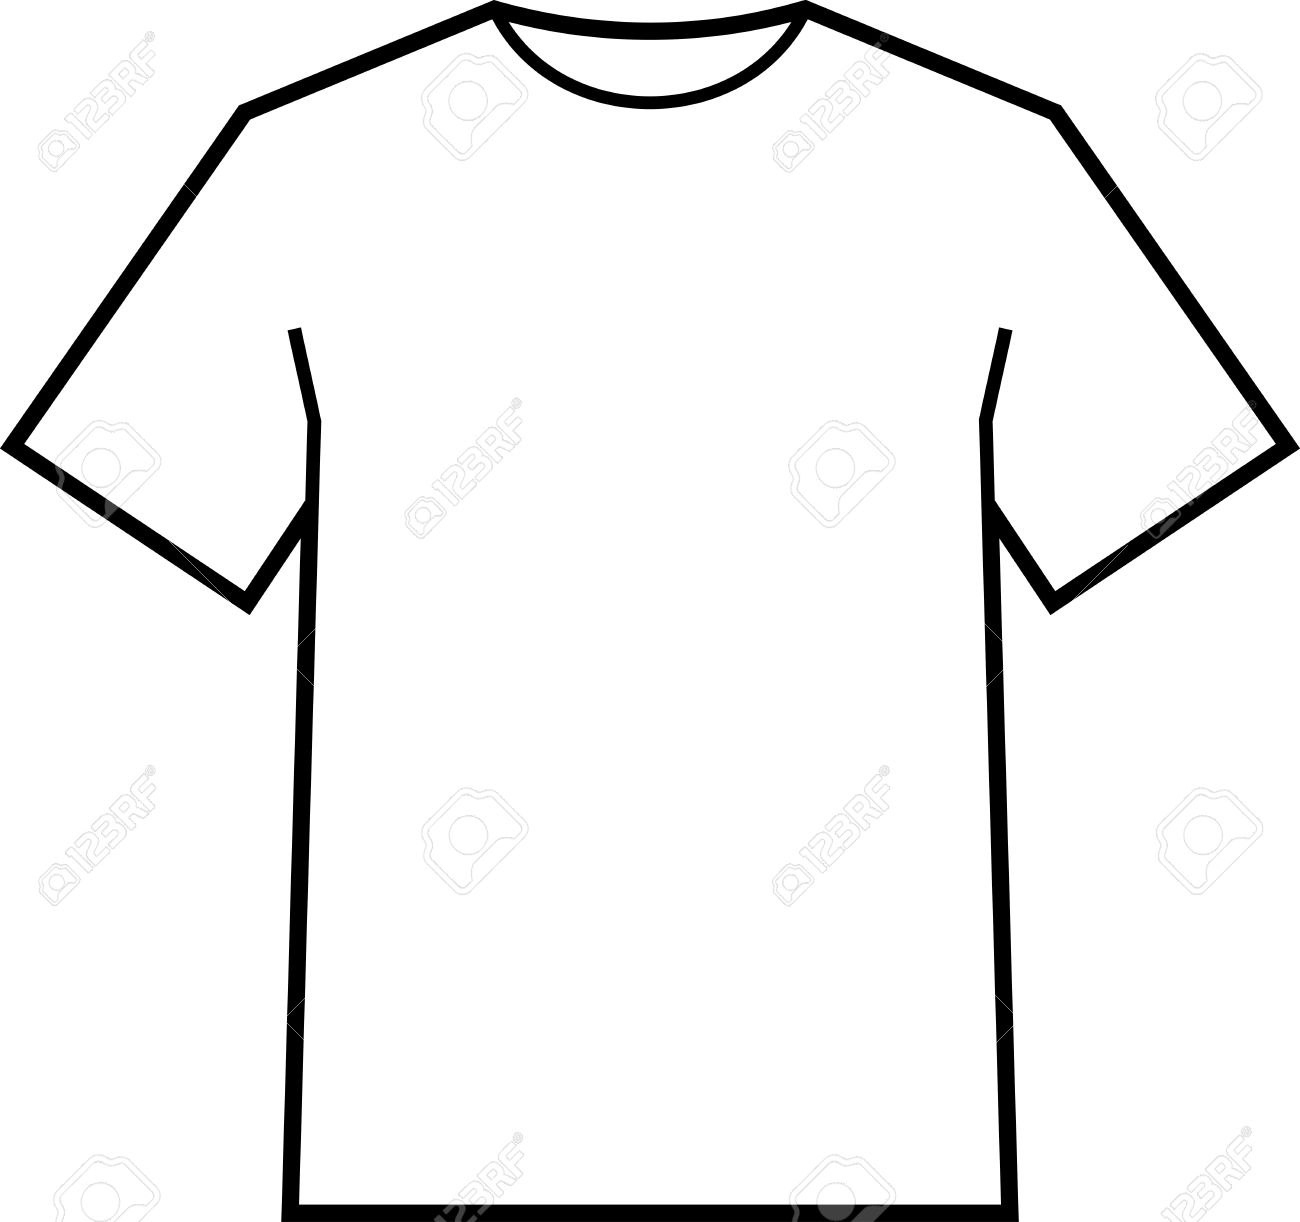 Blank Tshirt Template Vector Royalty Free Cliparts Vectors And Throughout Blank Tee Shirt Template